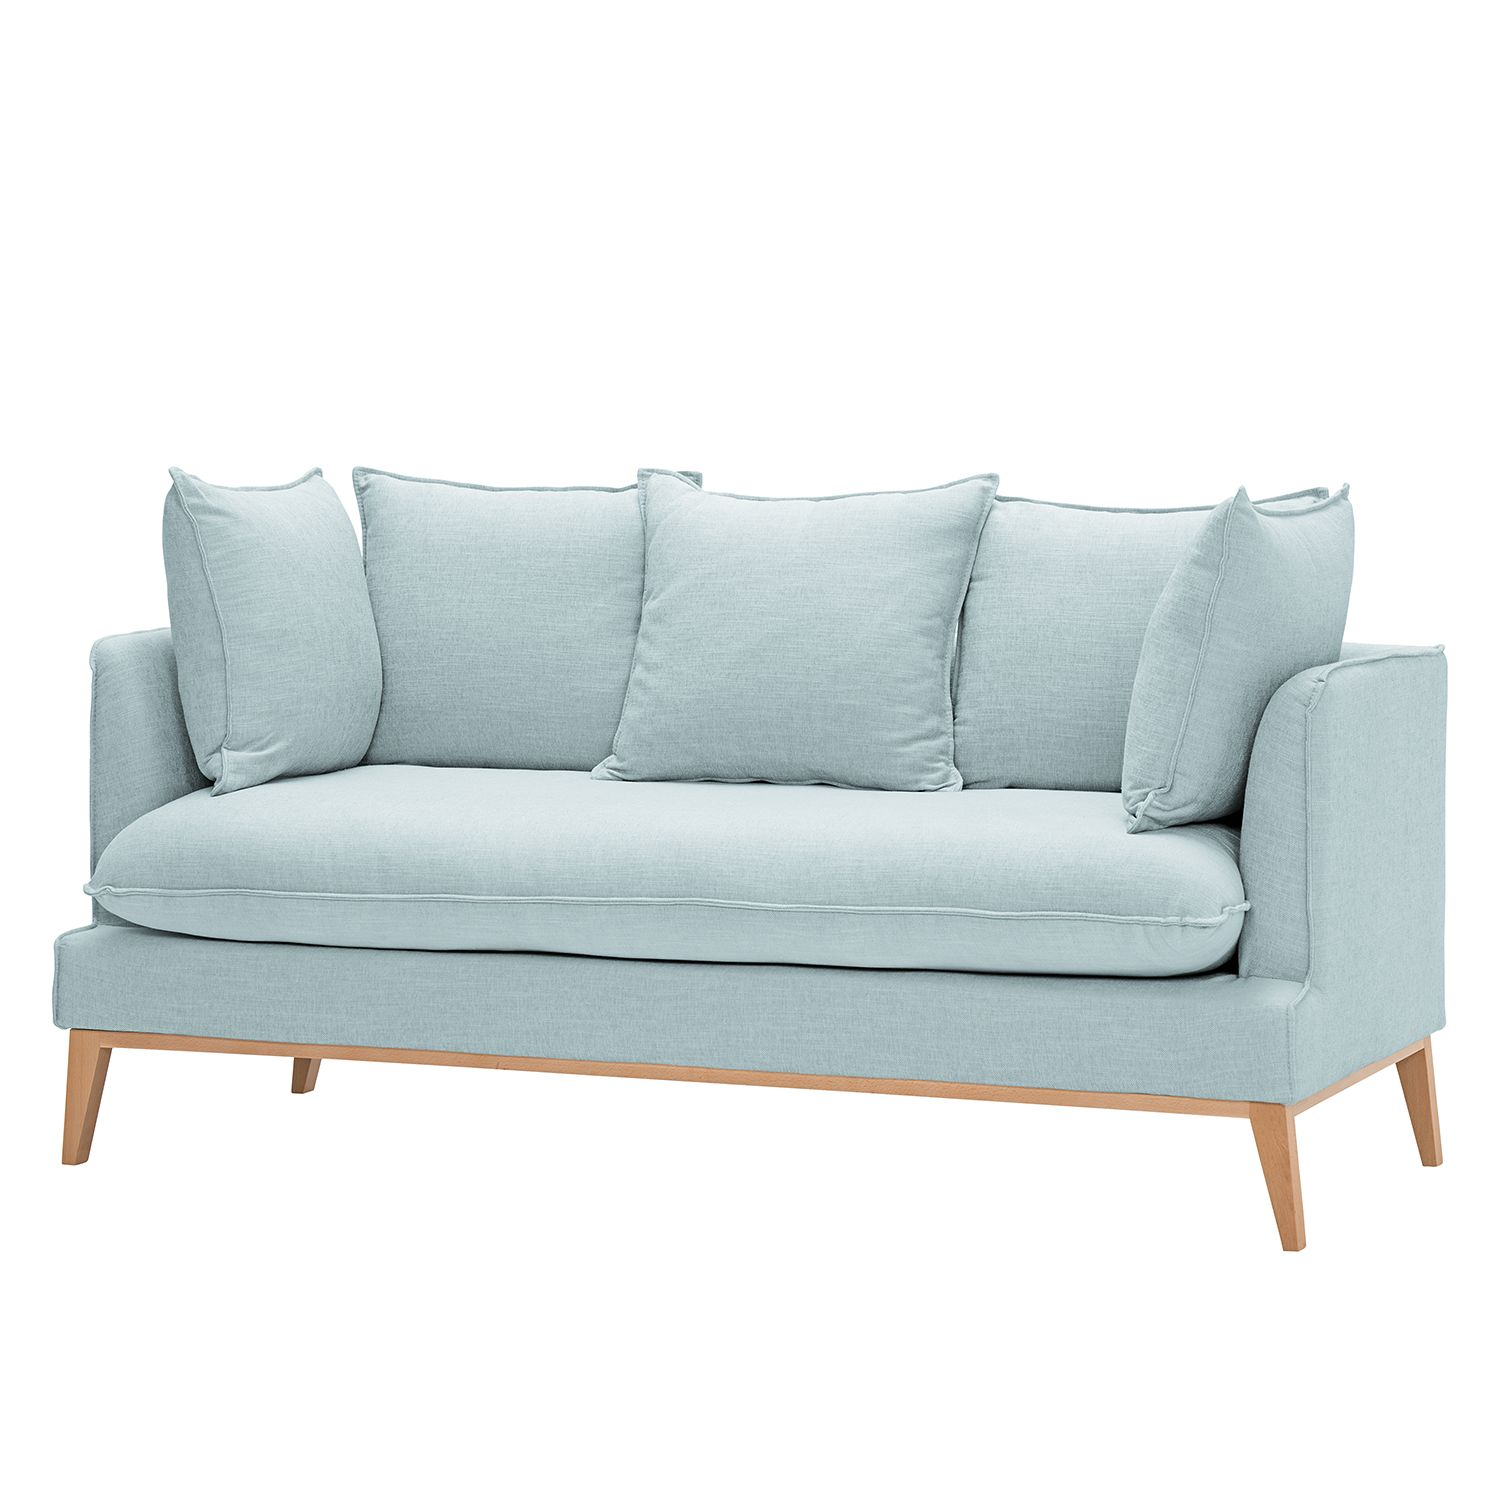 Sofa Webstoff Sofa Sulviken 3 Sitzer Webstoff Products Pinterest Sofa